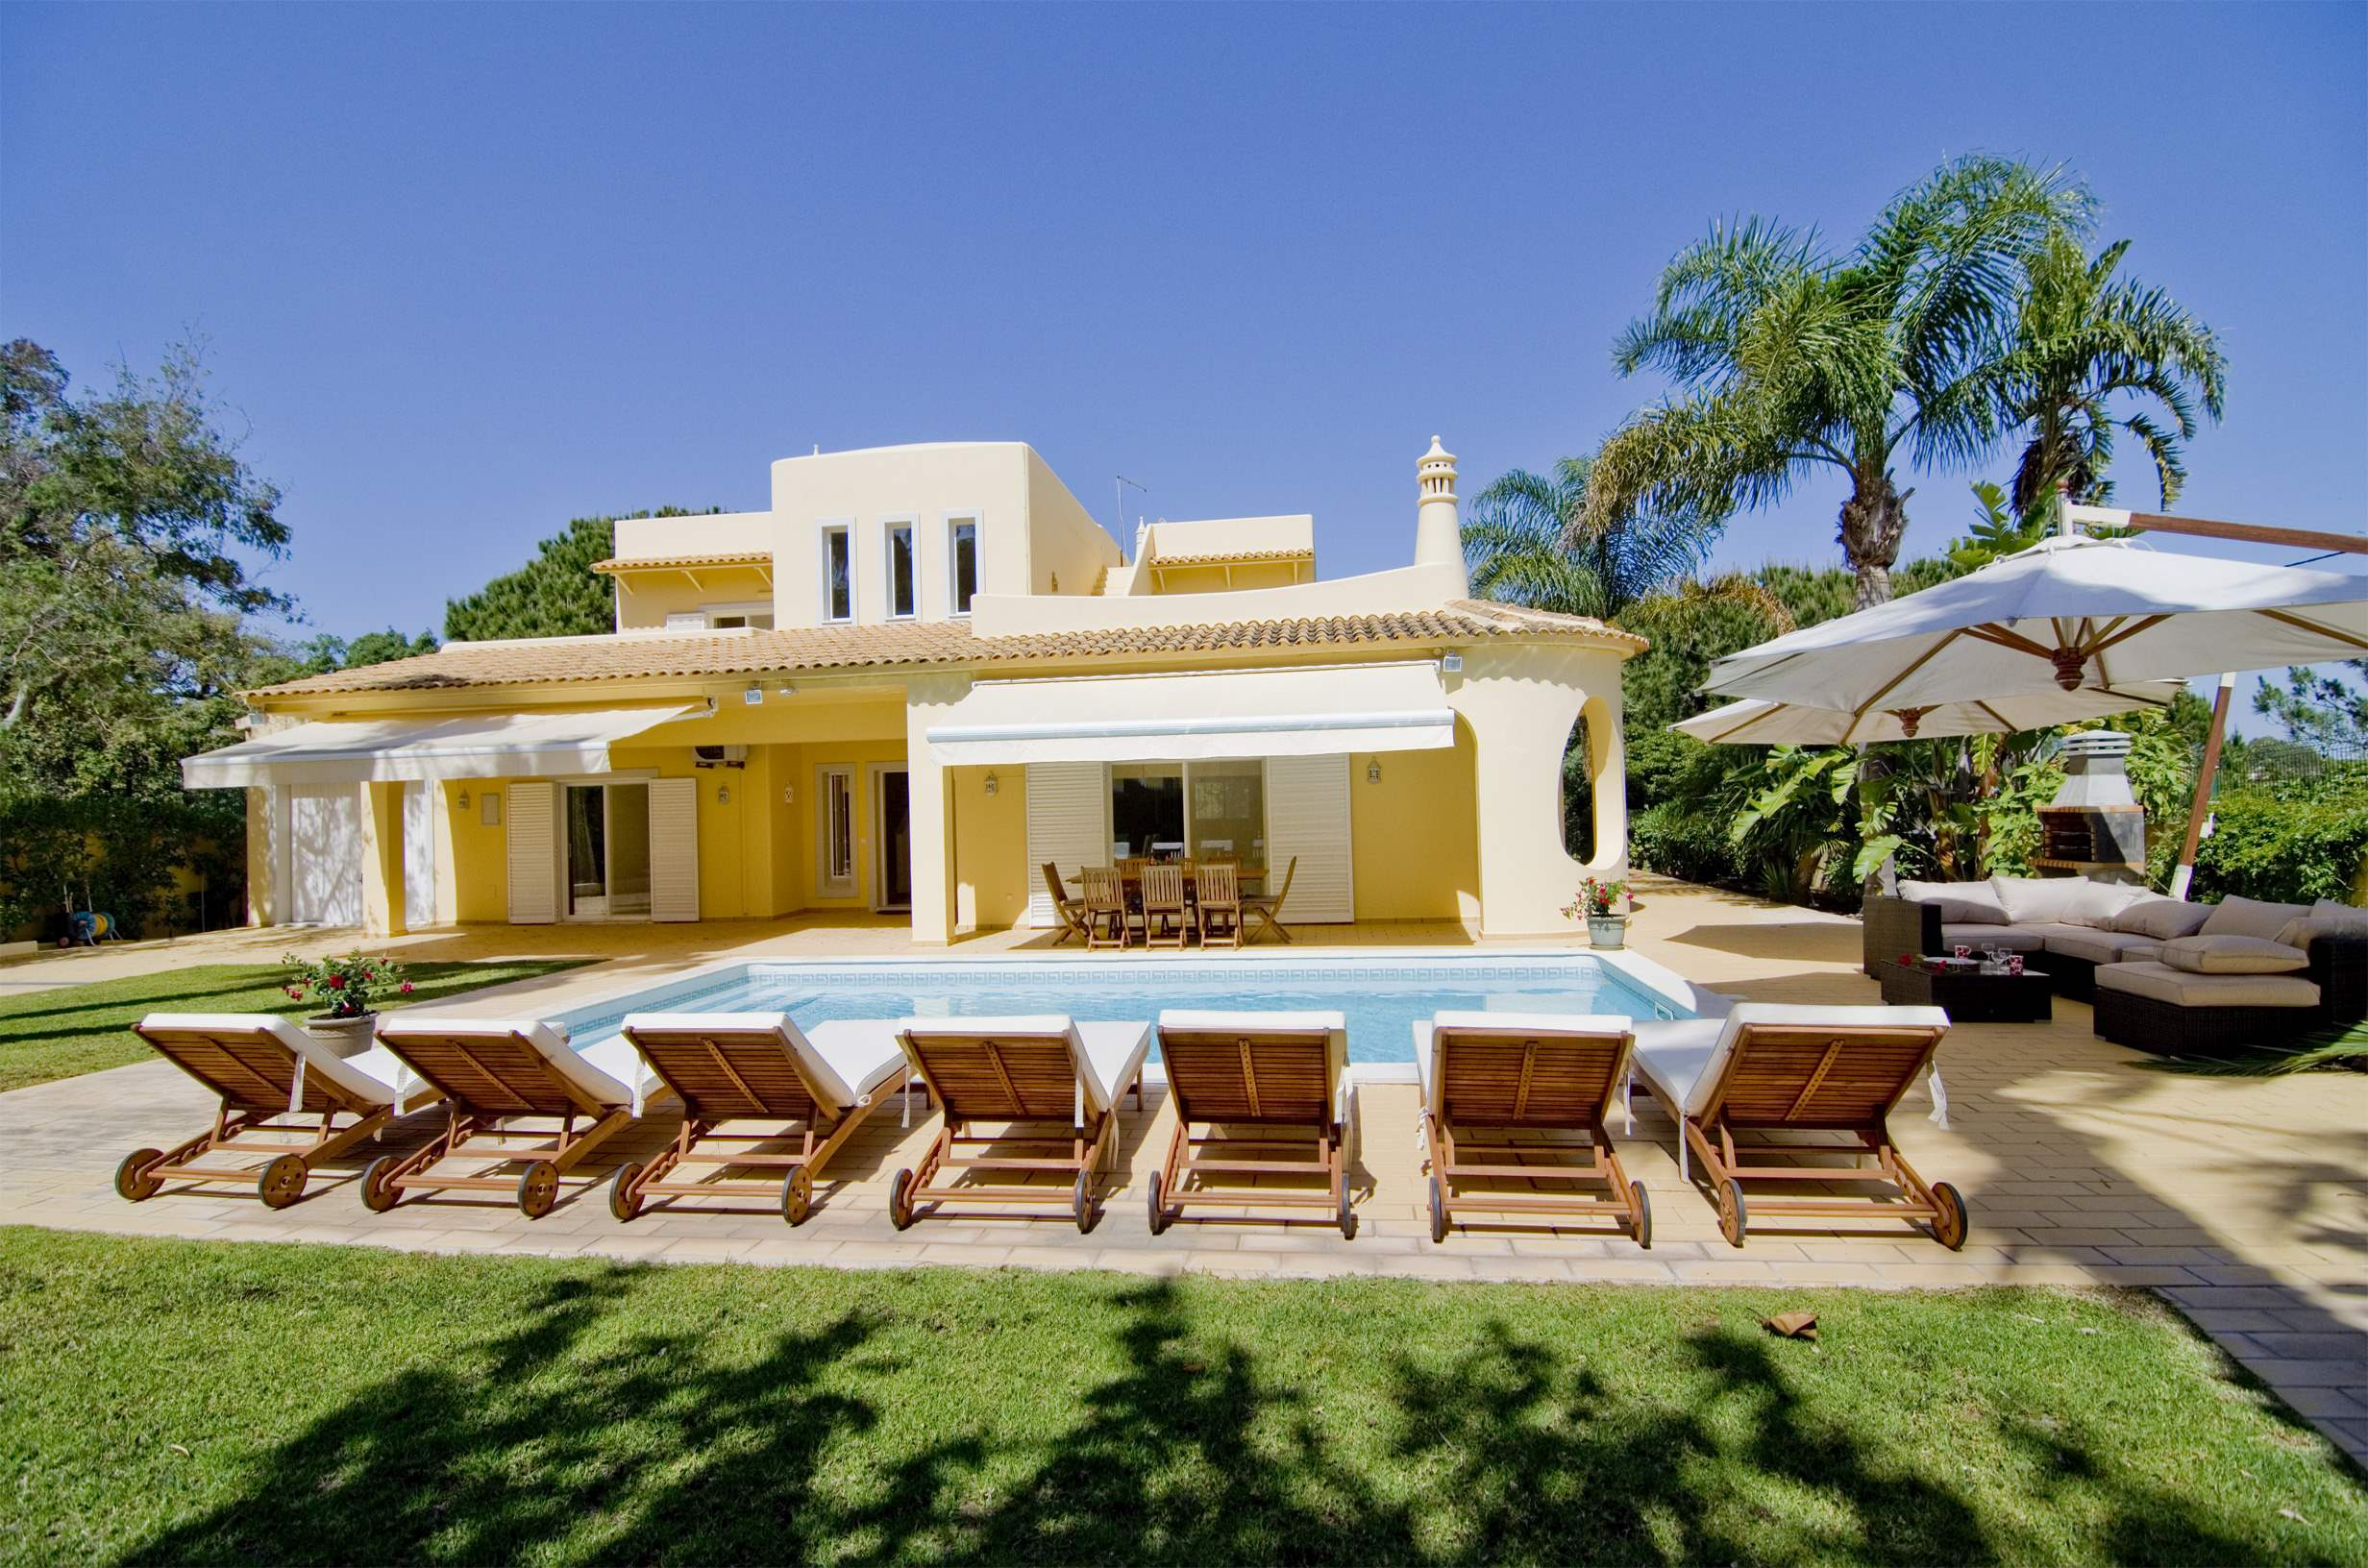 Villa Jasmina, 4 bedroom villa in Vale do Lobo, Algarve Photo #1